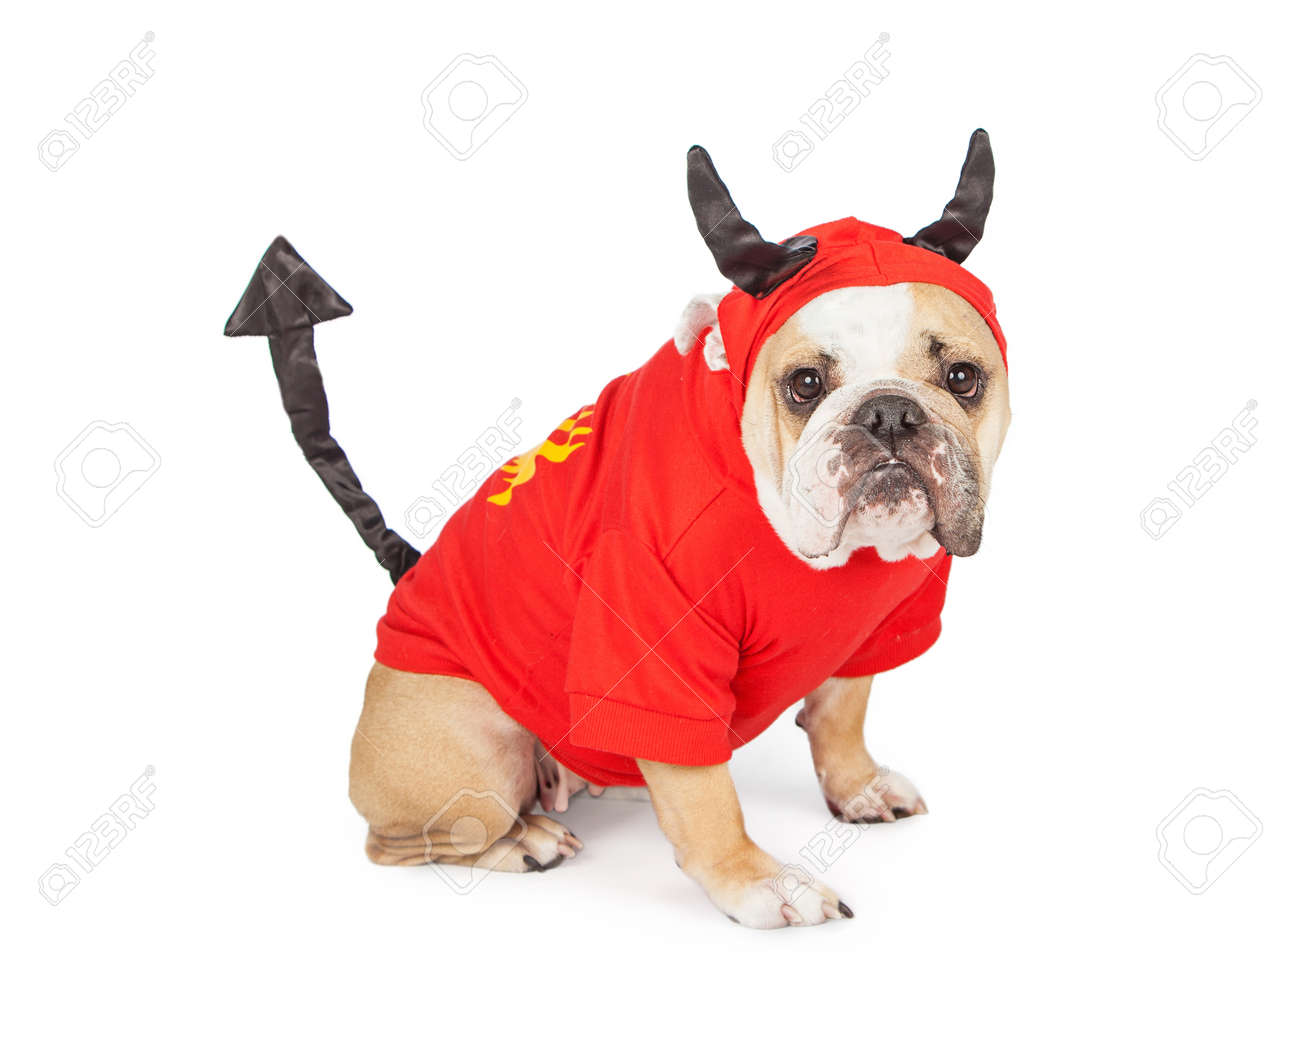 Funny Bulldog breed dog wearing a devil costume for Halloween - 47230362